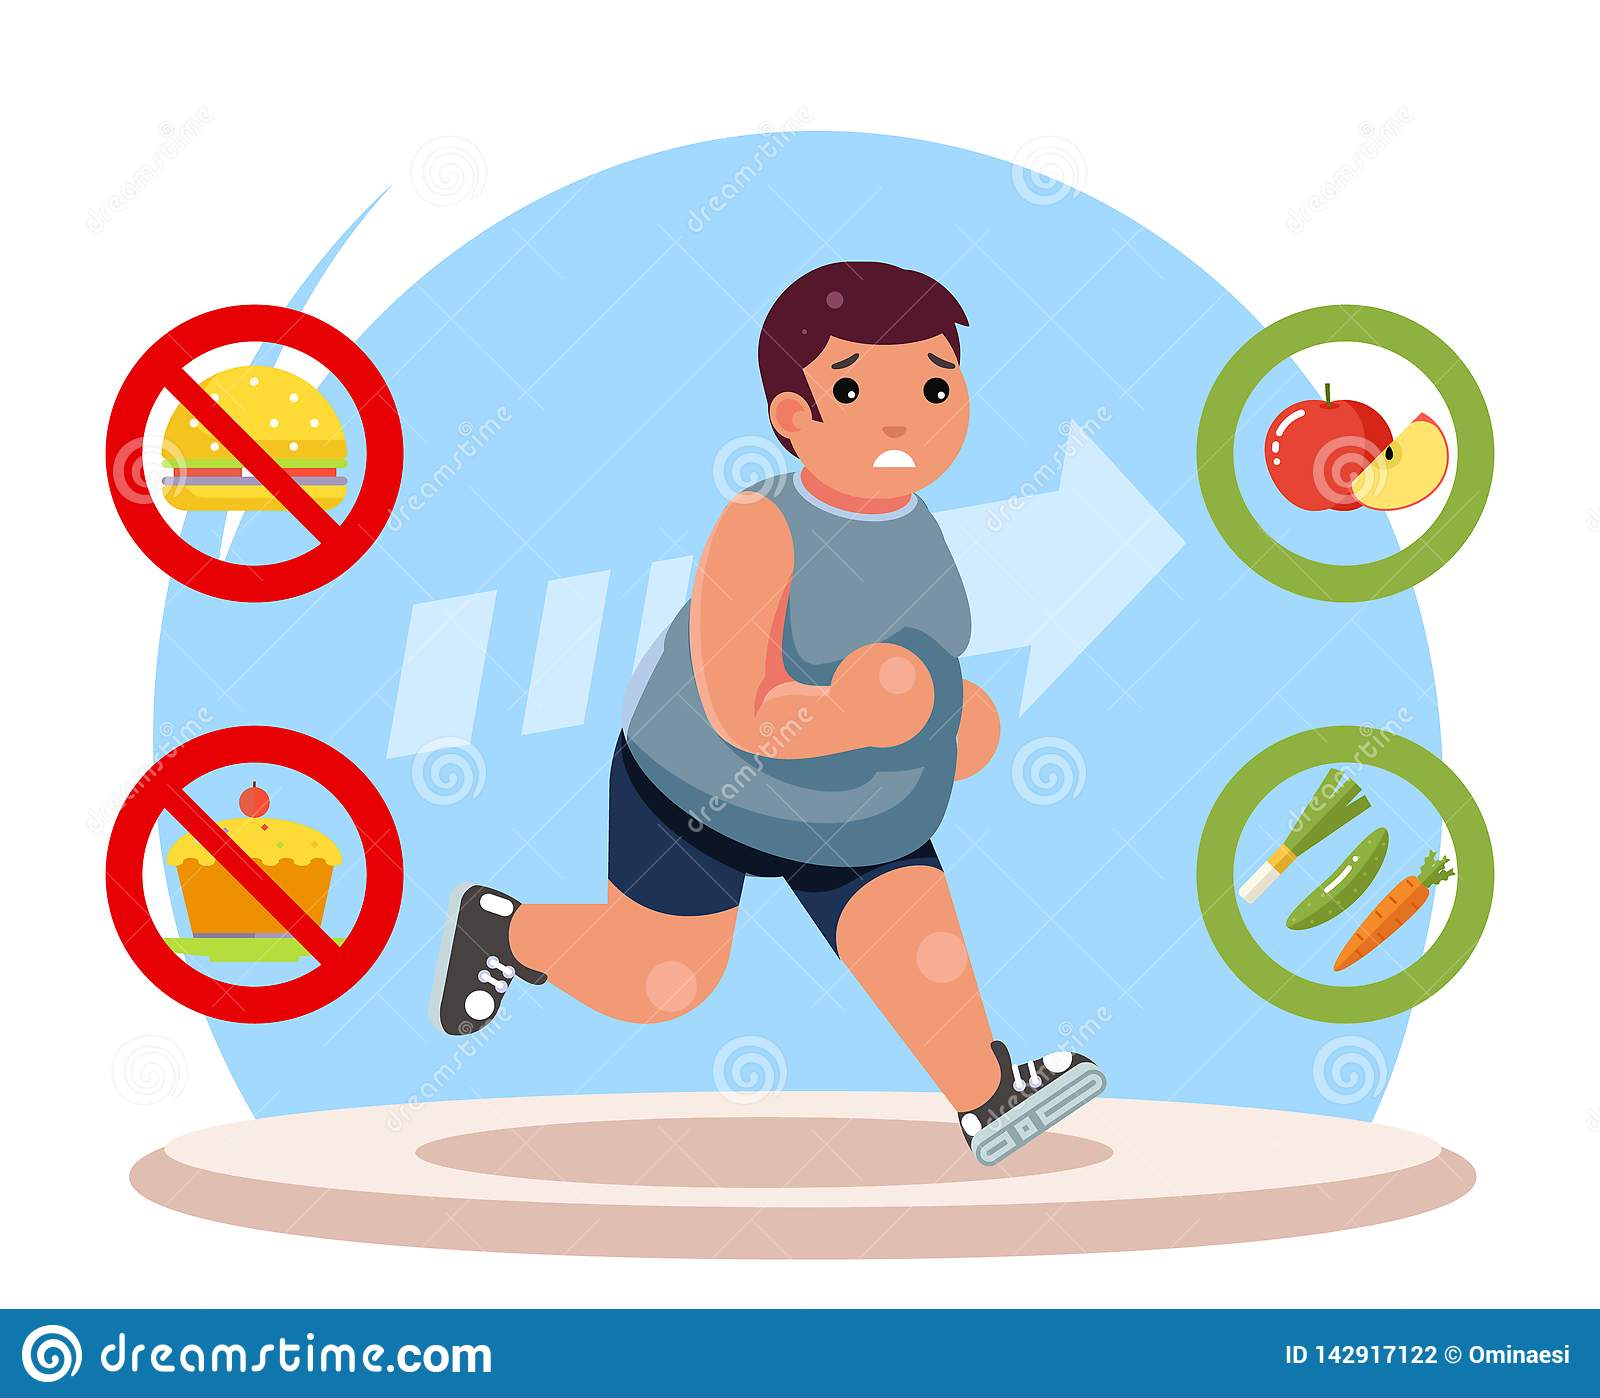 Overweight Body Diet Fat Man Character Lose Weight Figure Health Junk Food Refusal Flat Cartoon Design Vector Stock Vector Illustration Of Belly Male 142917122